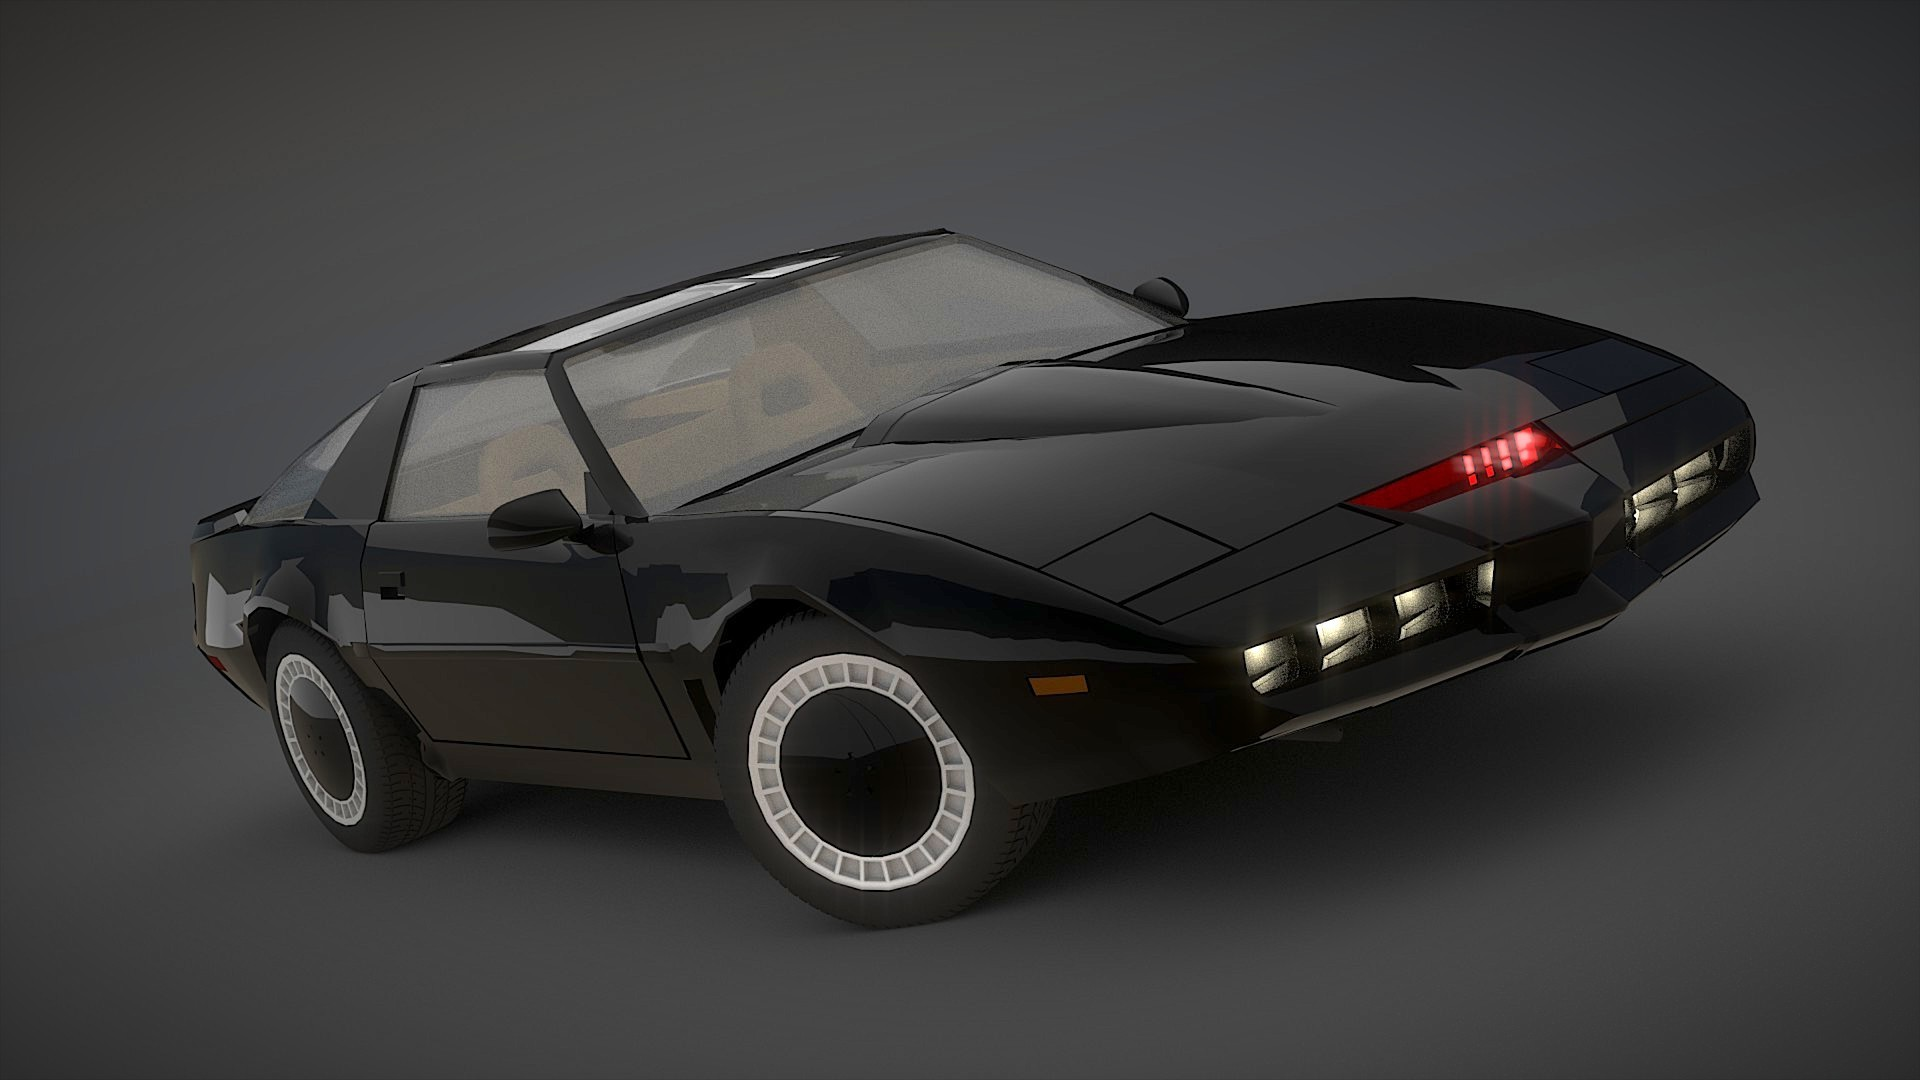 Knight Rider Wallpaper Knight Rider Backgrounds for PC 1920x1080